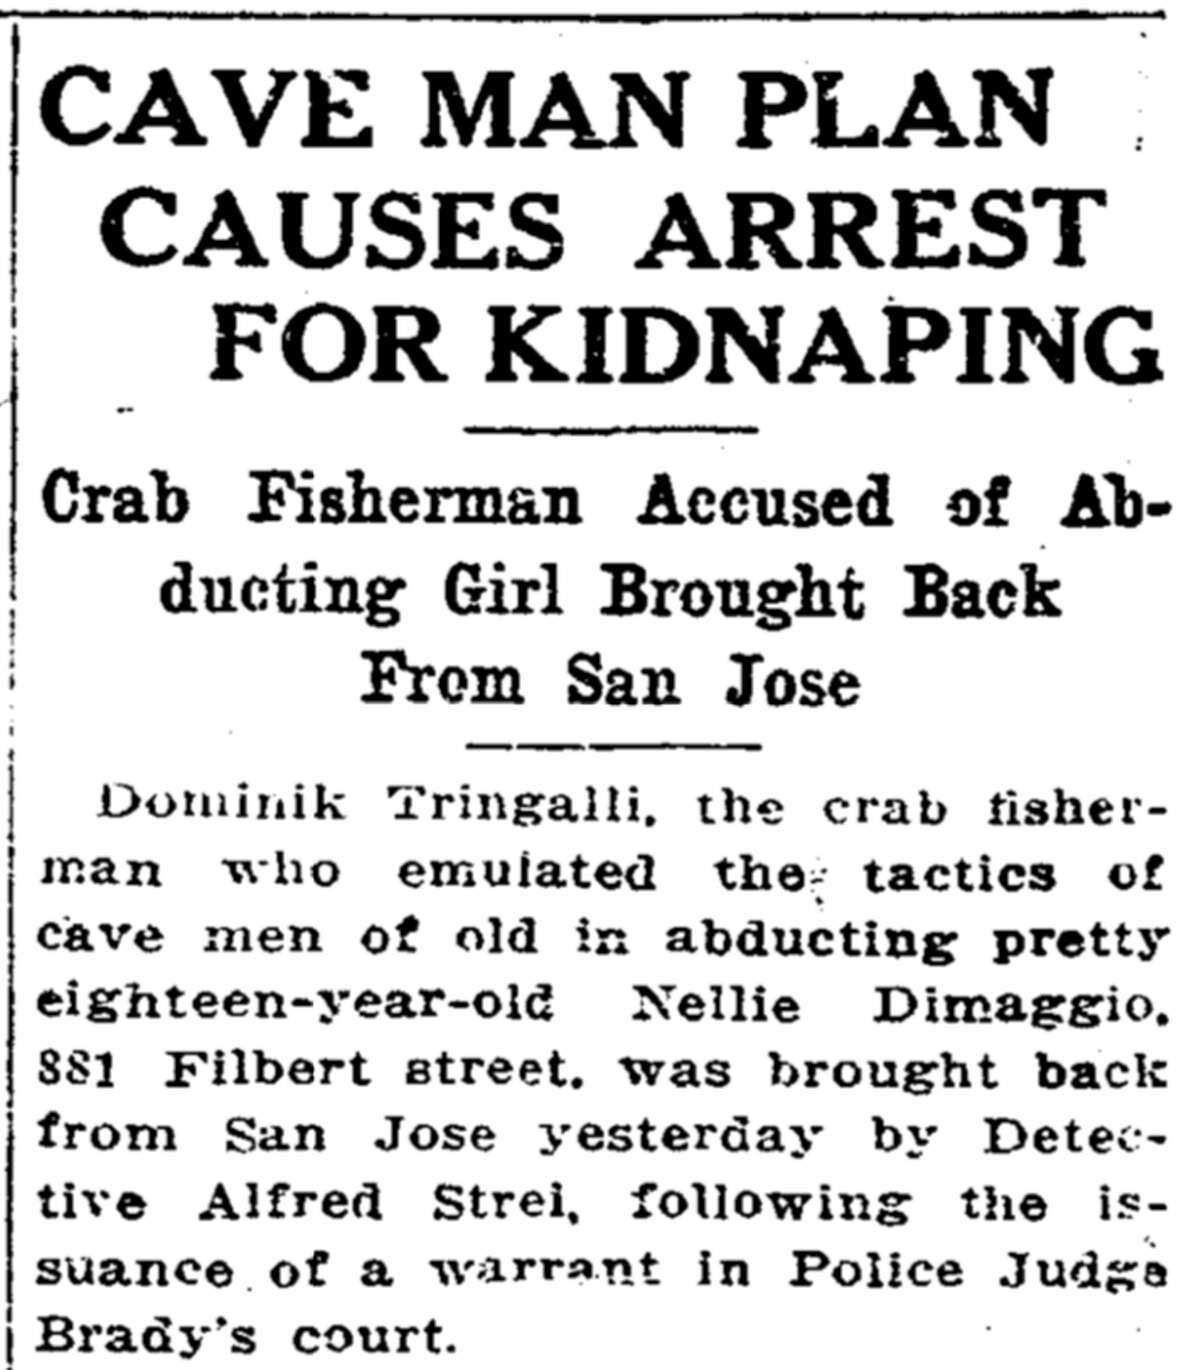 The 1917 San Francisco Chronicle article from the kidnapping of Nellie DiMaggio.